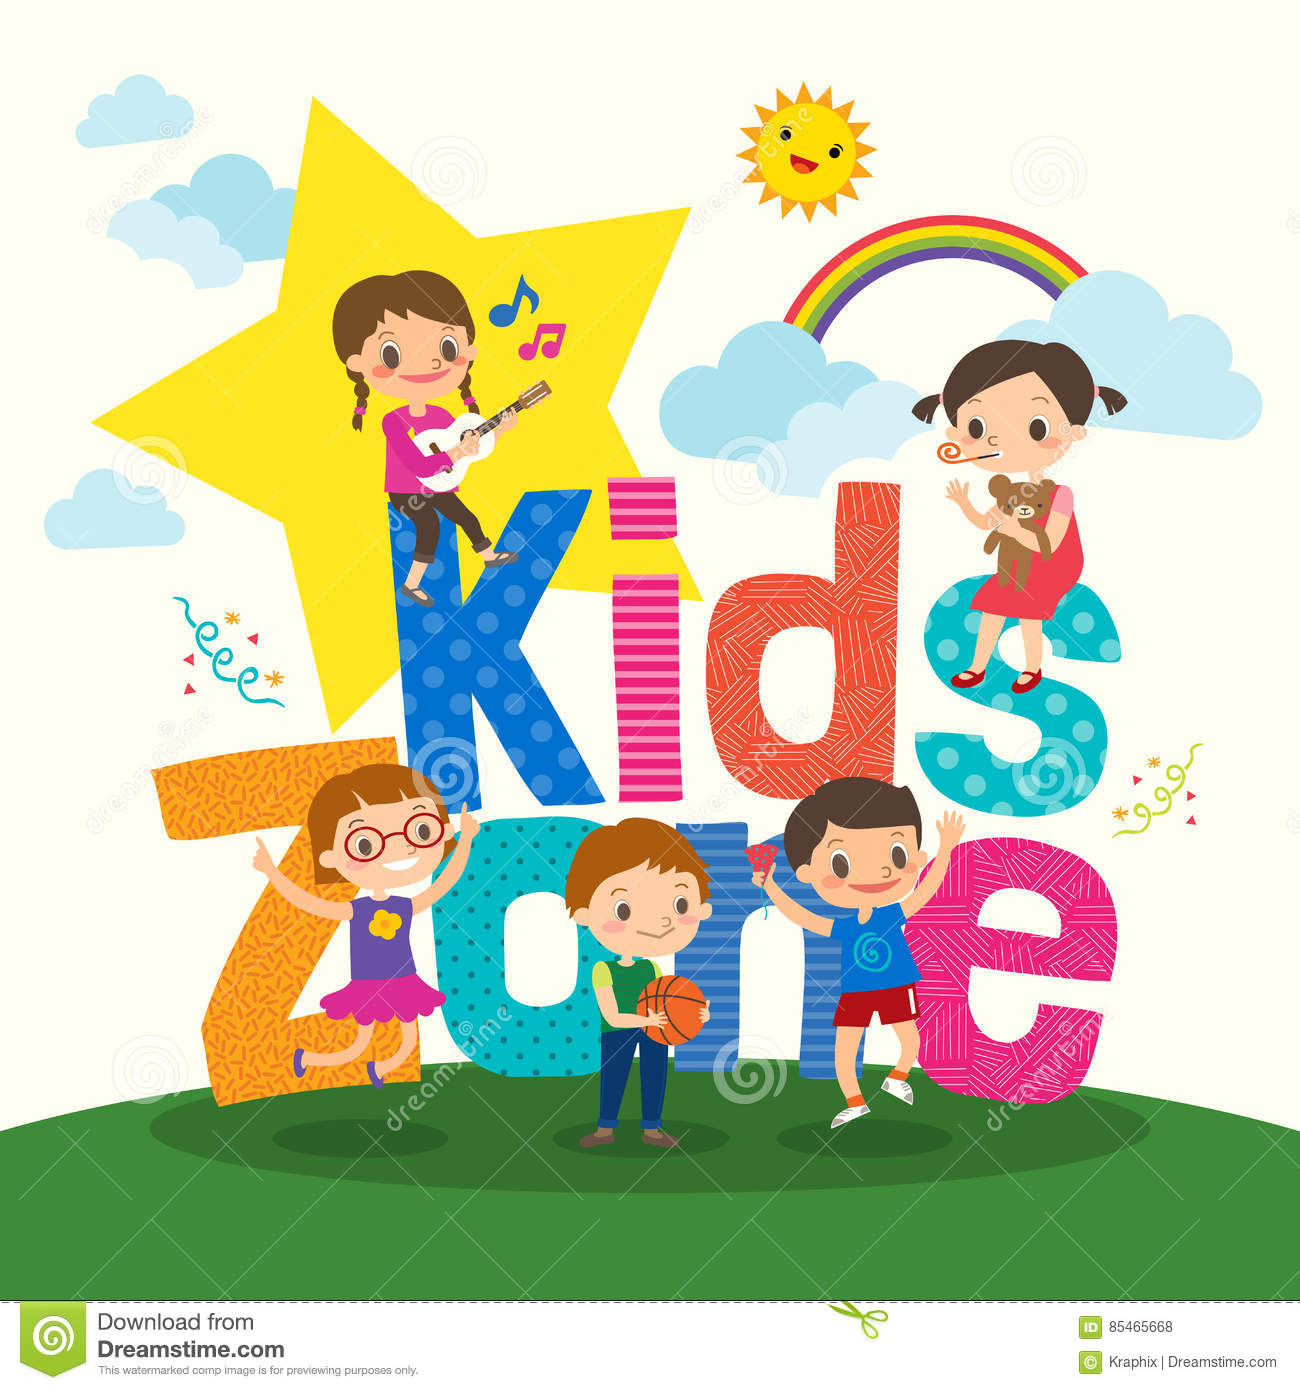 9e97d990ac1f84c83ffa8e2910794f2d_group-young-children-kids-zone-word-cartoon-illustration-vector-85465668.jpg